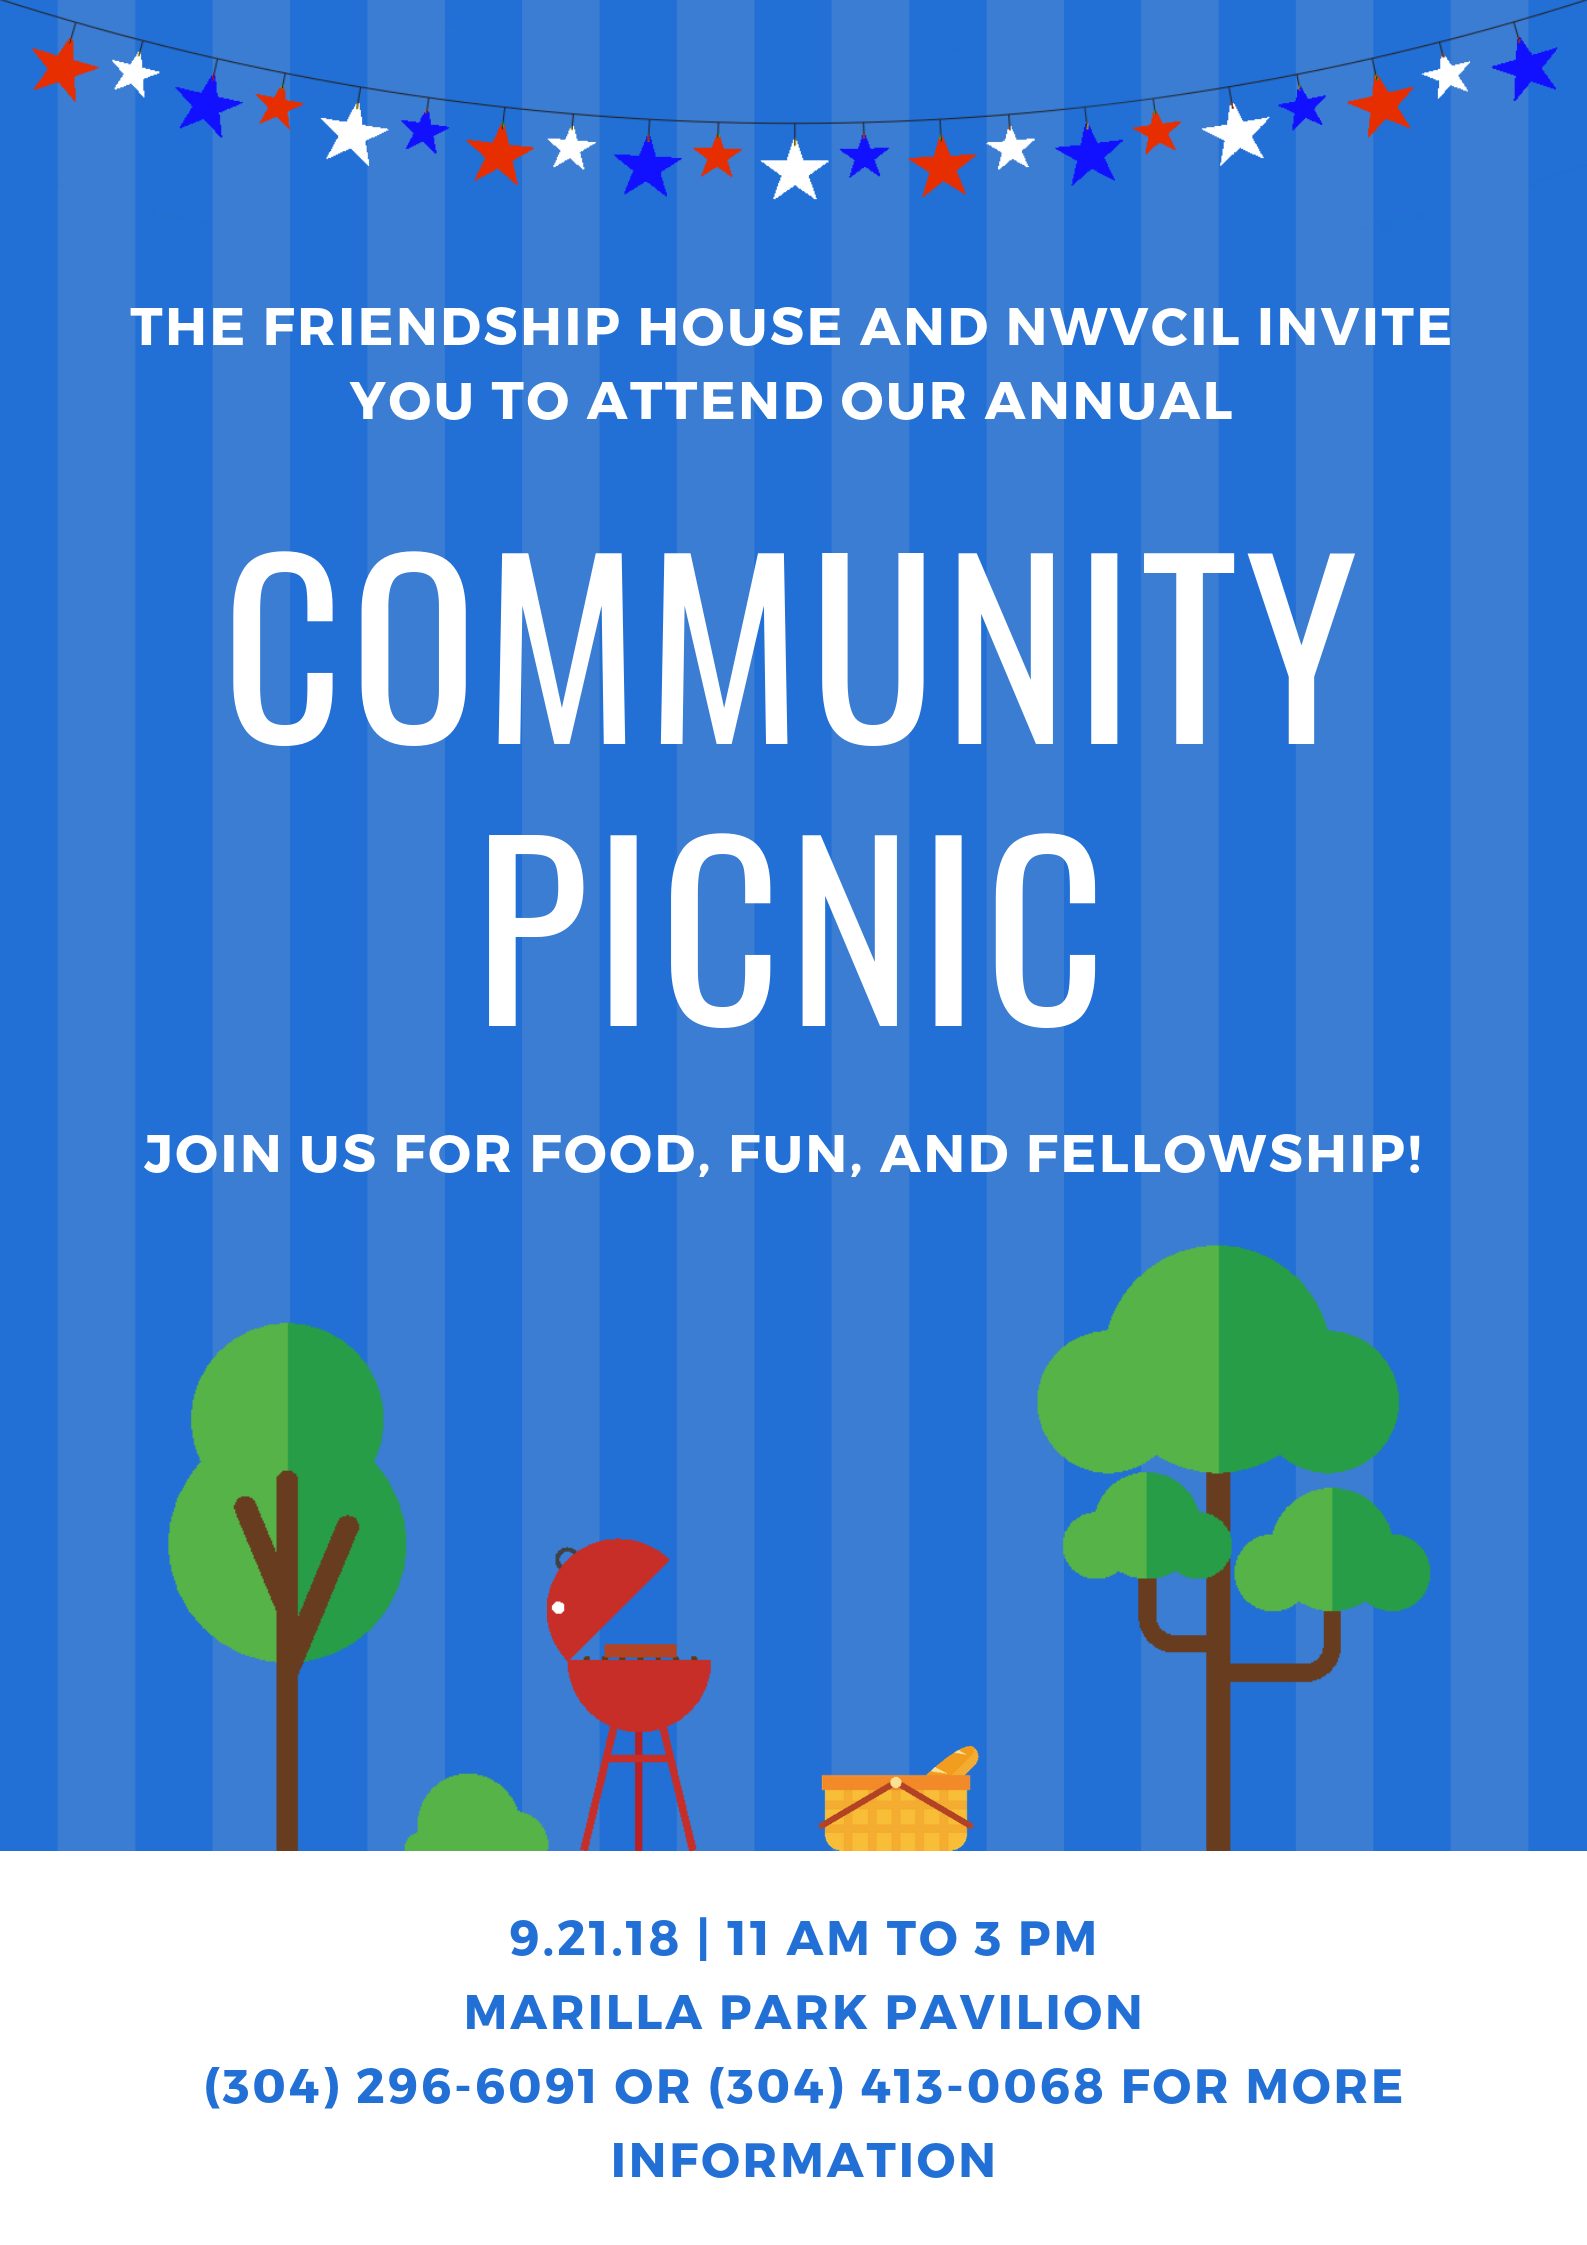 The Friendship House and NWVCIL invite you to attend our annual Community Picnic! Everyone welcome!  Friday, September 21st from 11 AM - 3 PM at Marilla Park Pavilion. Please call (304) 296-6091 for more information.  As an added bonus, there's now a bus route that passes by the pavilion! Please see http://www.busride.org/Maps-Schedules/Routes/8-Brookhaven for more information regarding that route.